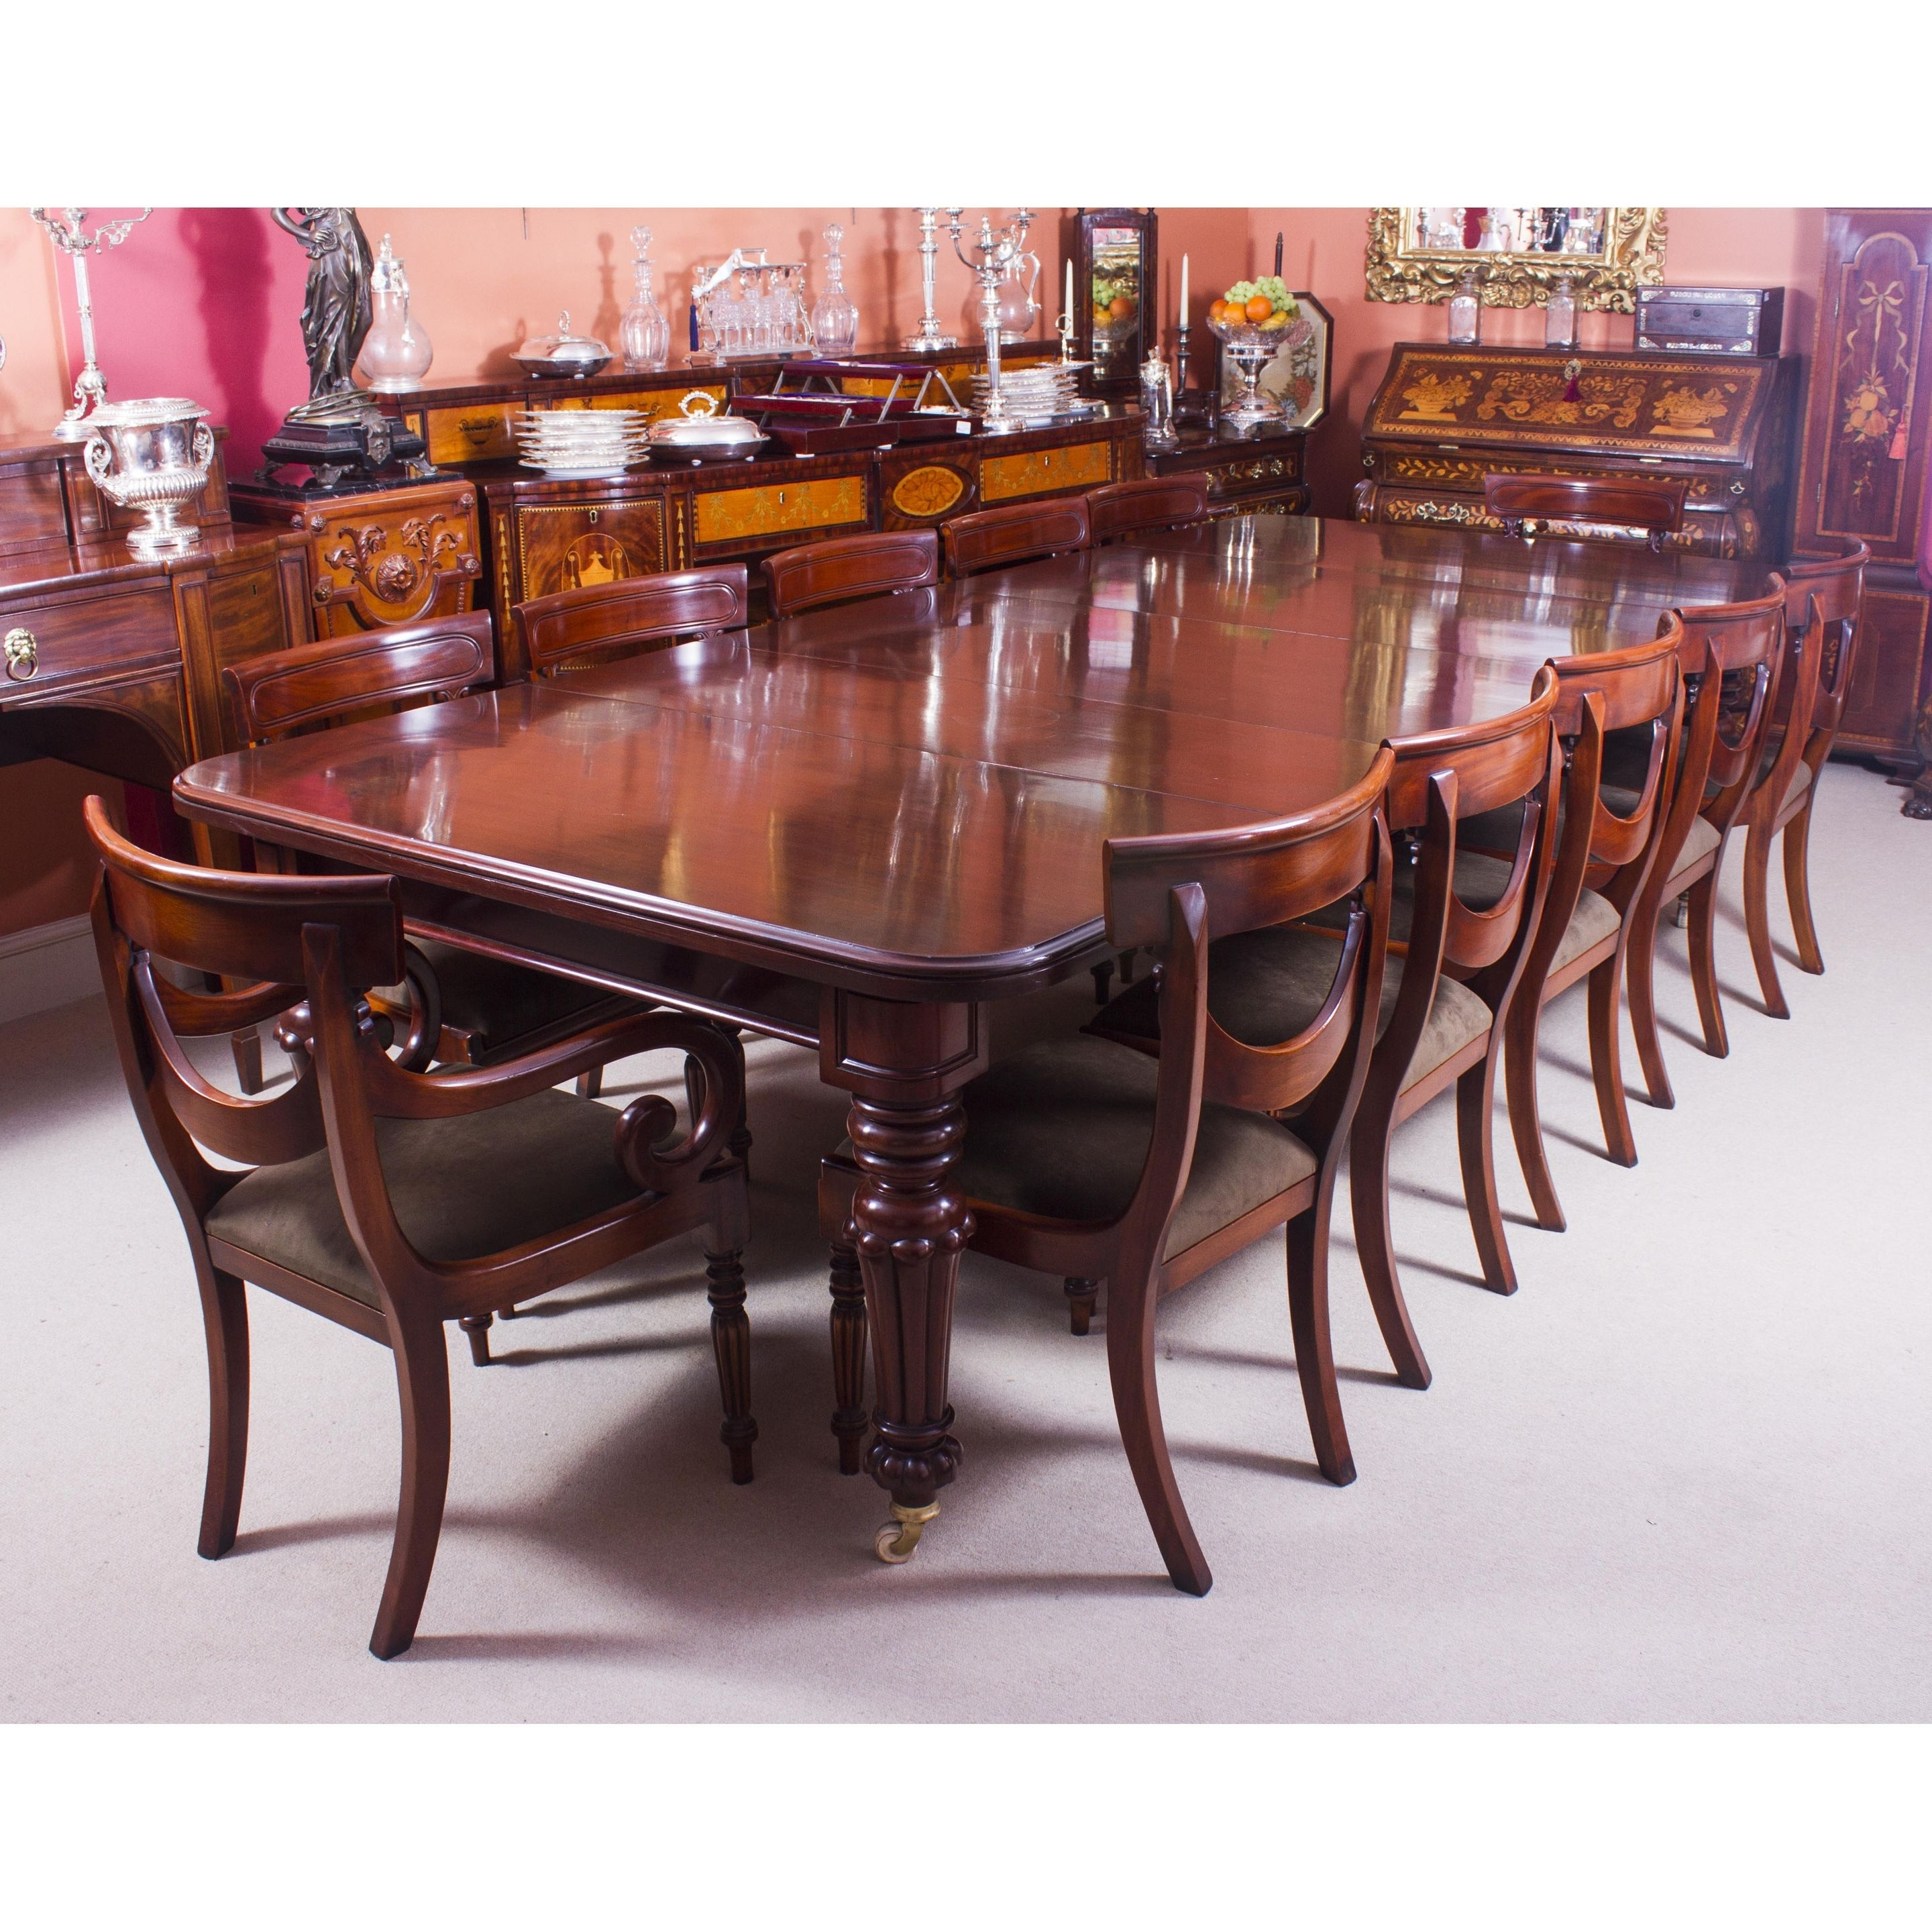 Antique 10 Ft Flame Mahogany Extending Dining Table 19Th Century Within Most Popular Mahogany Extending Dining Tables And Chairs (Gallery 1 of 25)